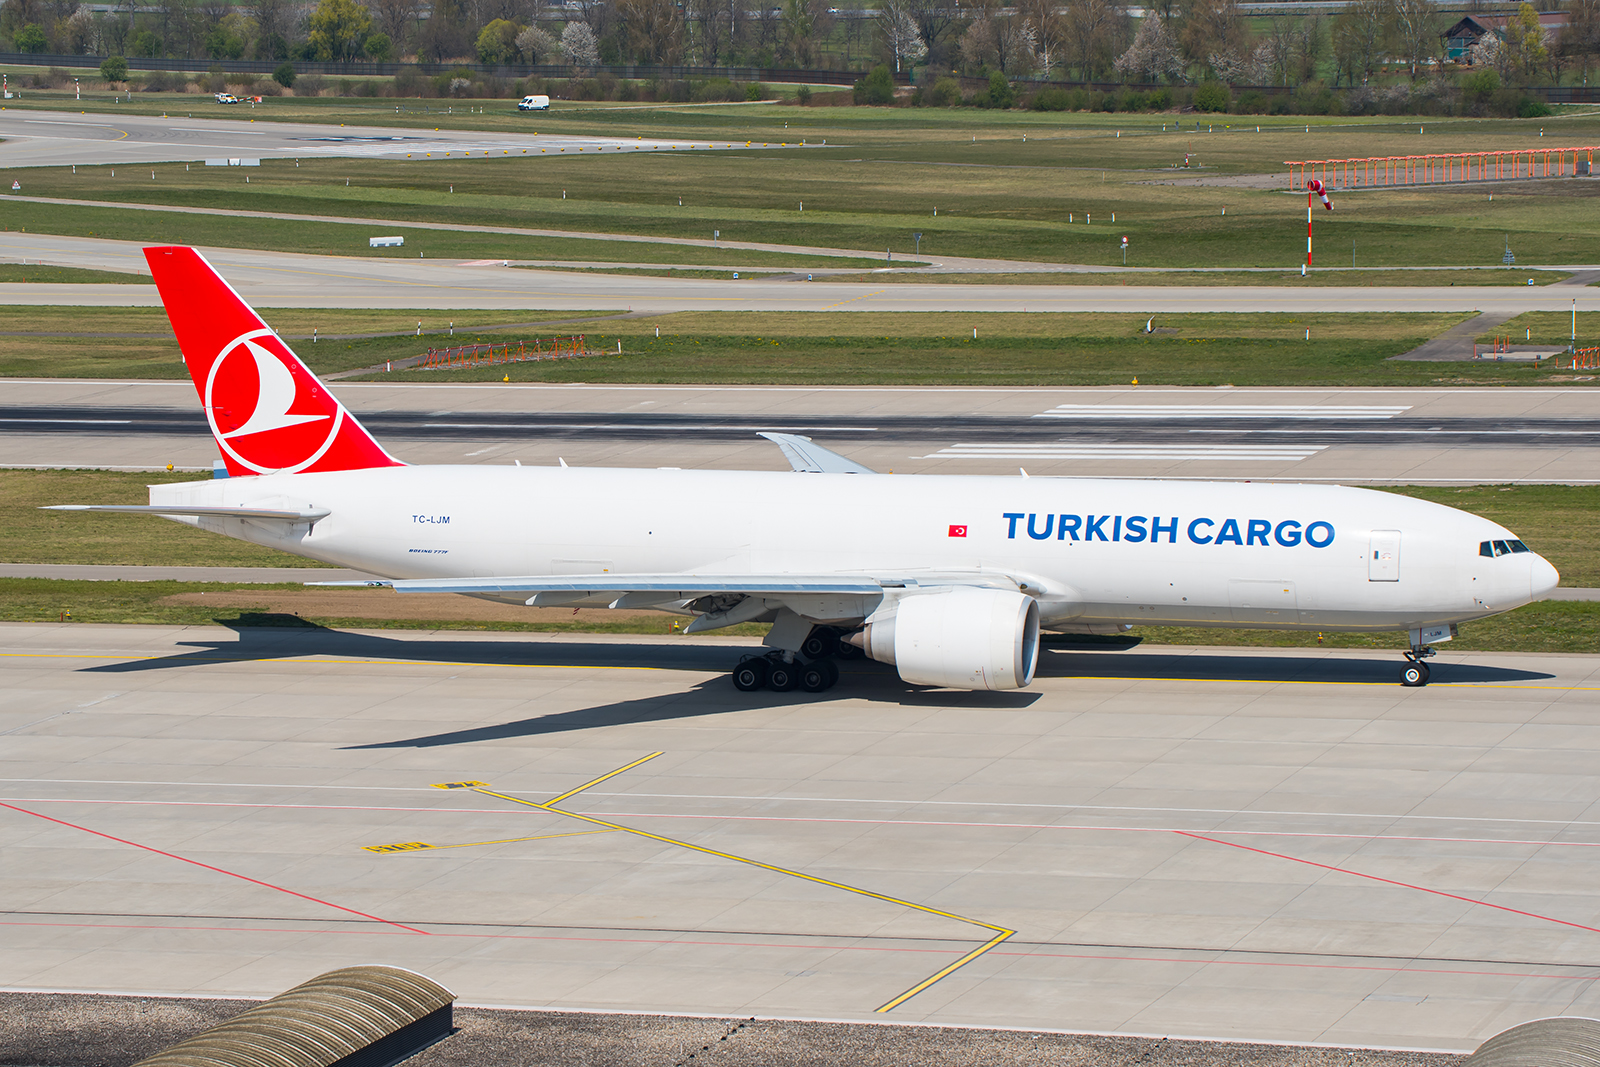 tcljm_turkish_cargo_bmrkox.jpg